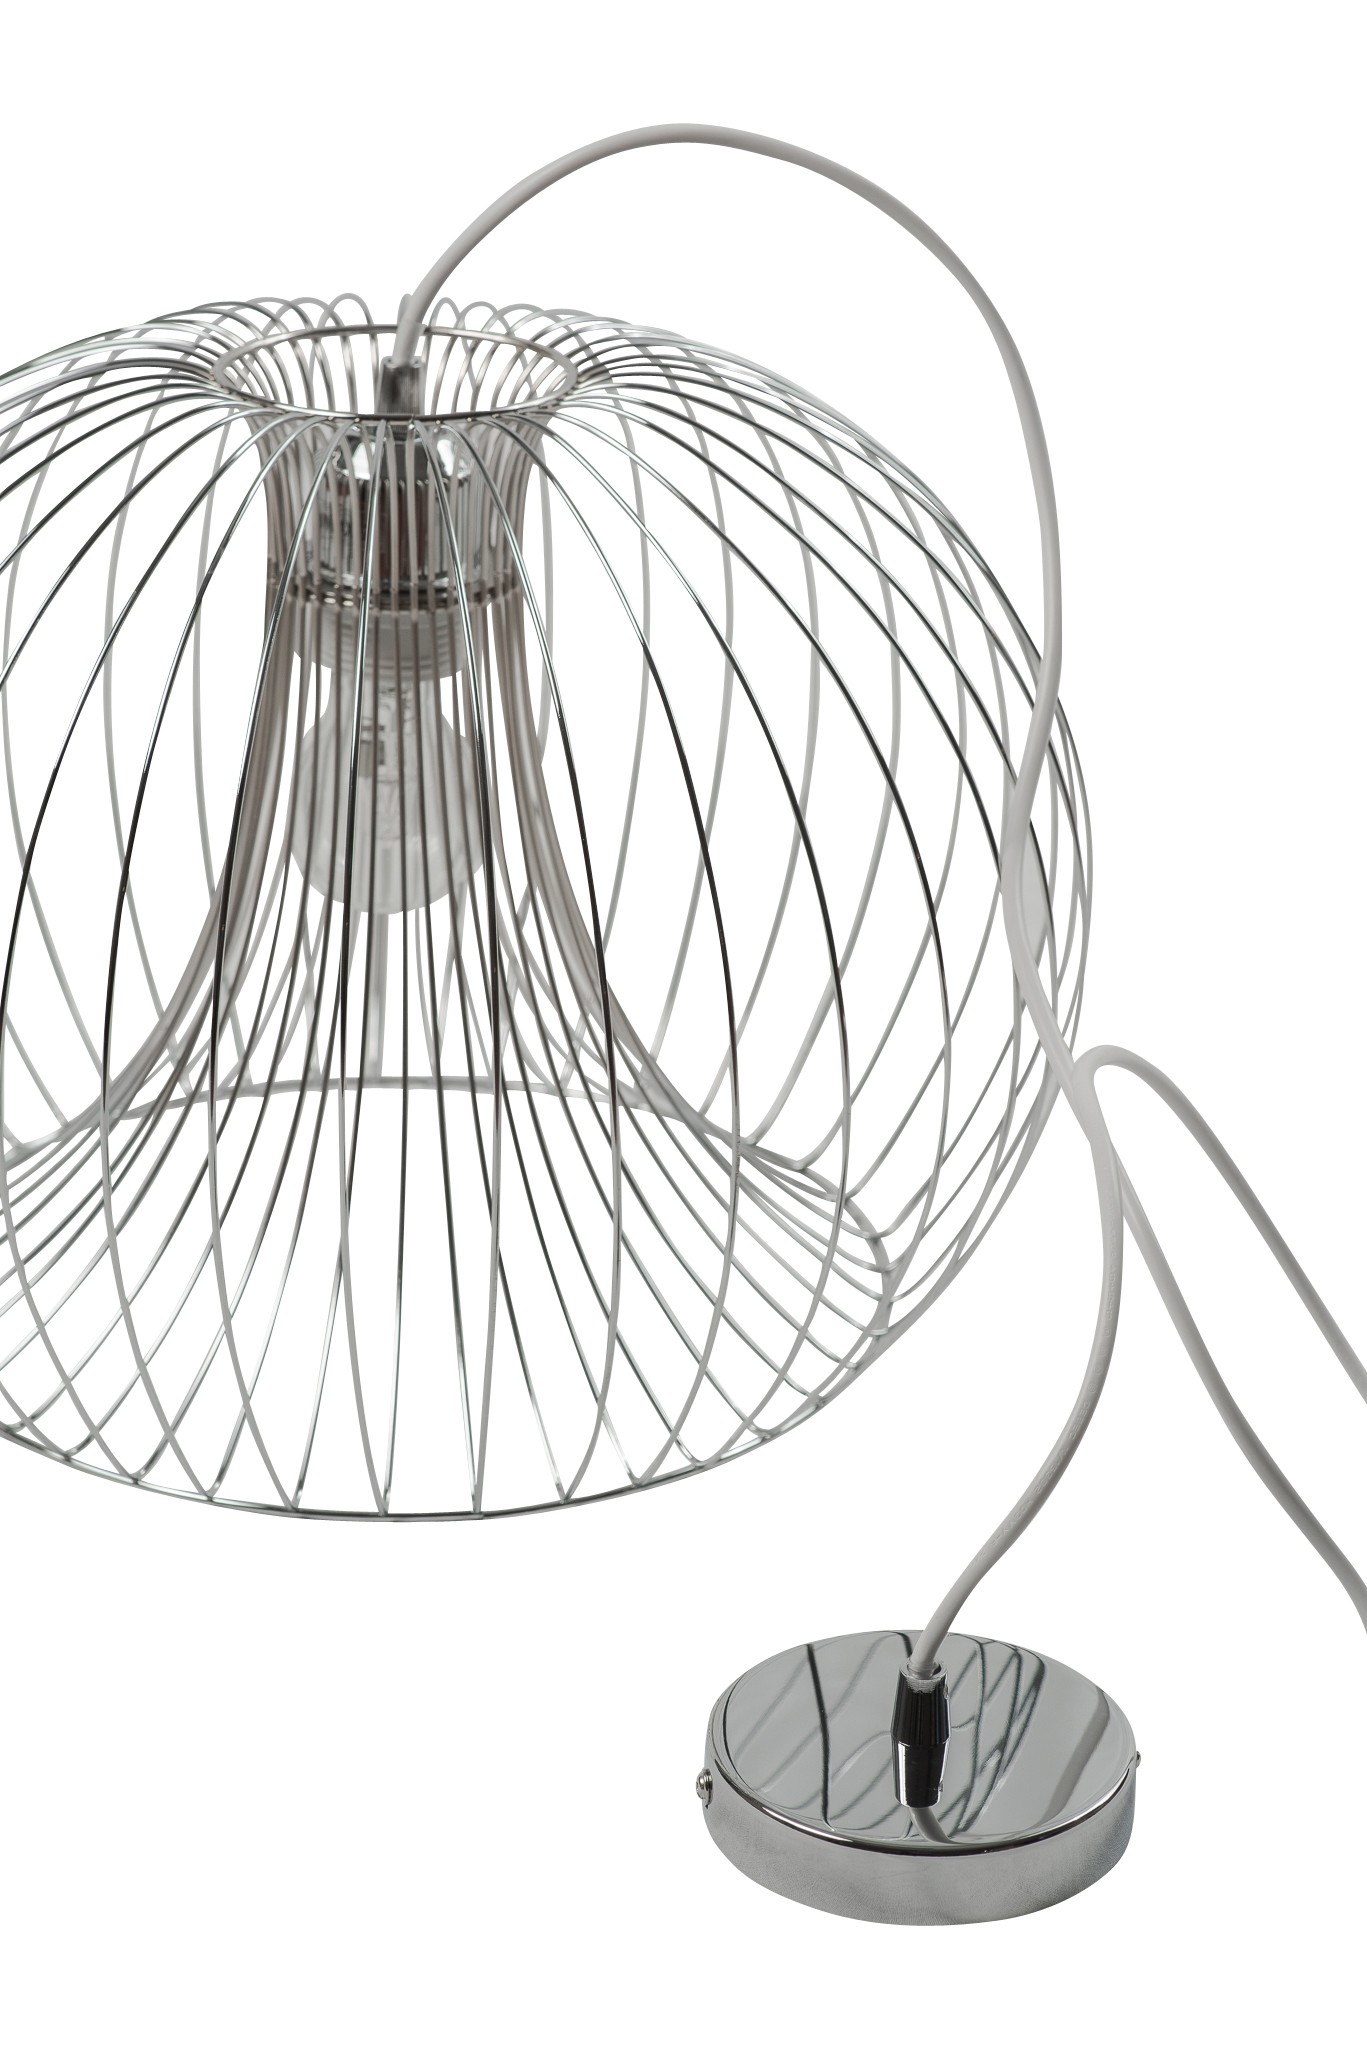 Contemporary modern Chrome wire ceiling pendant chandelier